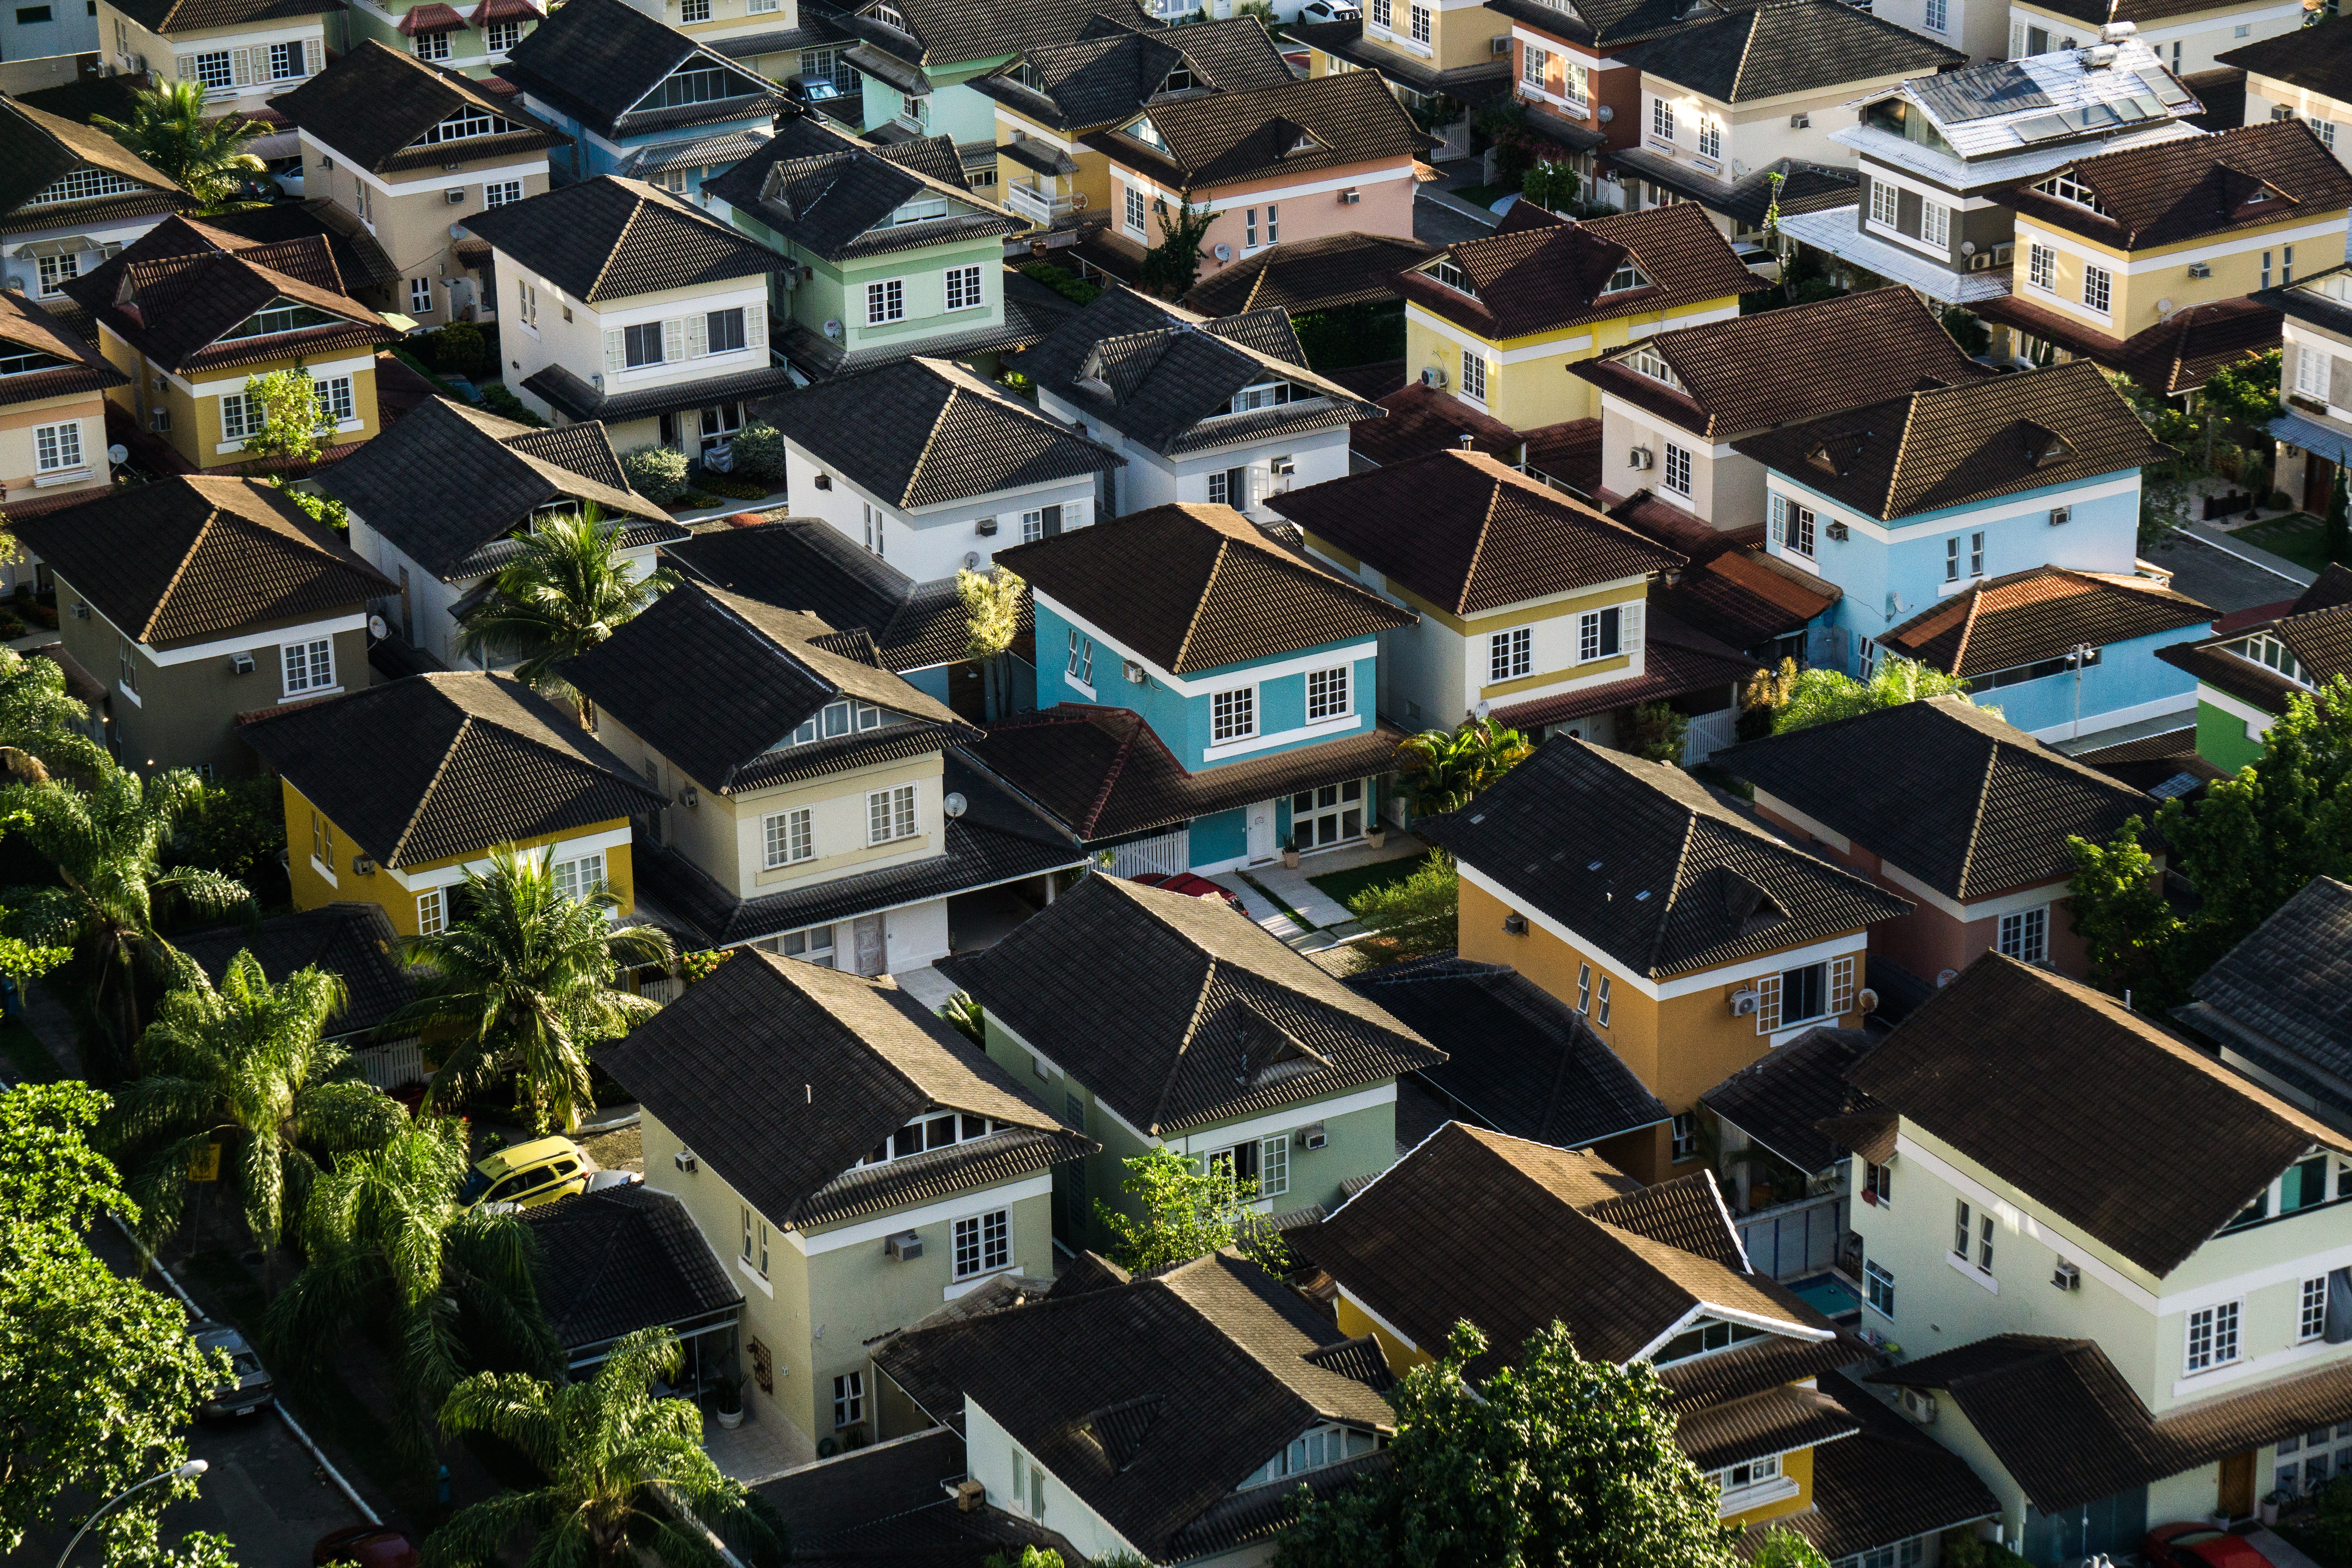 Local Housing Market Financial Considerations Explored